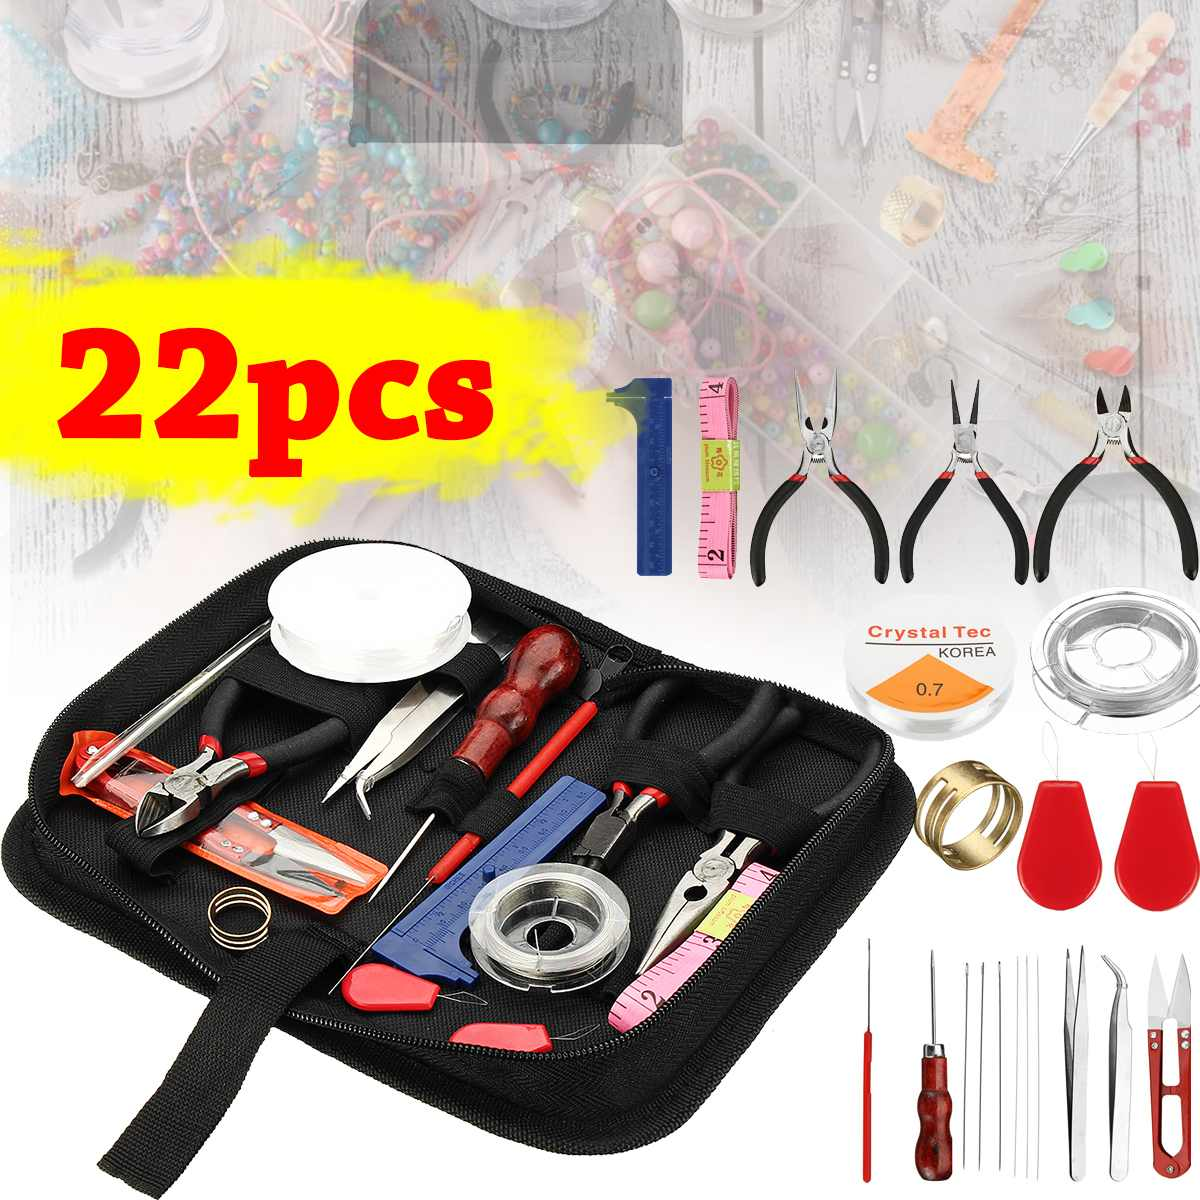 Beading-Wire-Set Jewelry Pliers Jewelry-Making-Tools-Kit Diy-Craft 22pc/Set